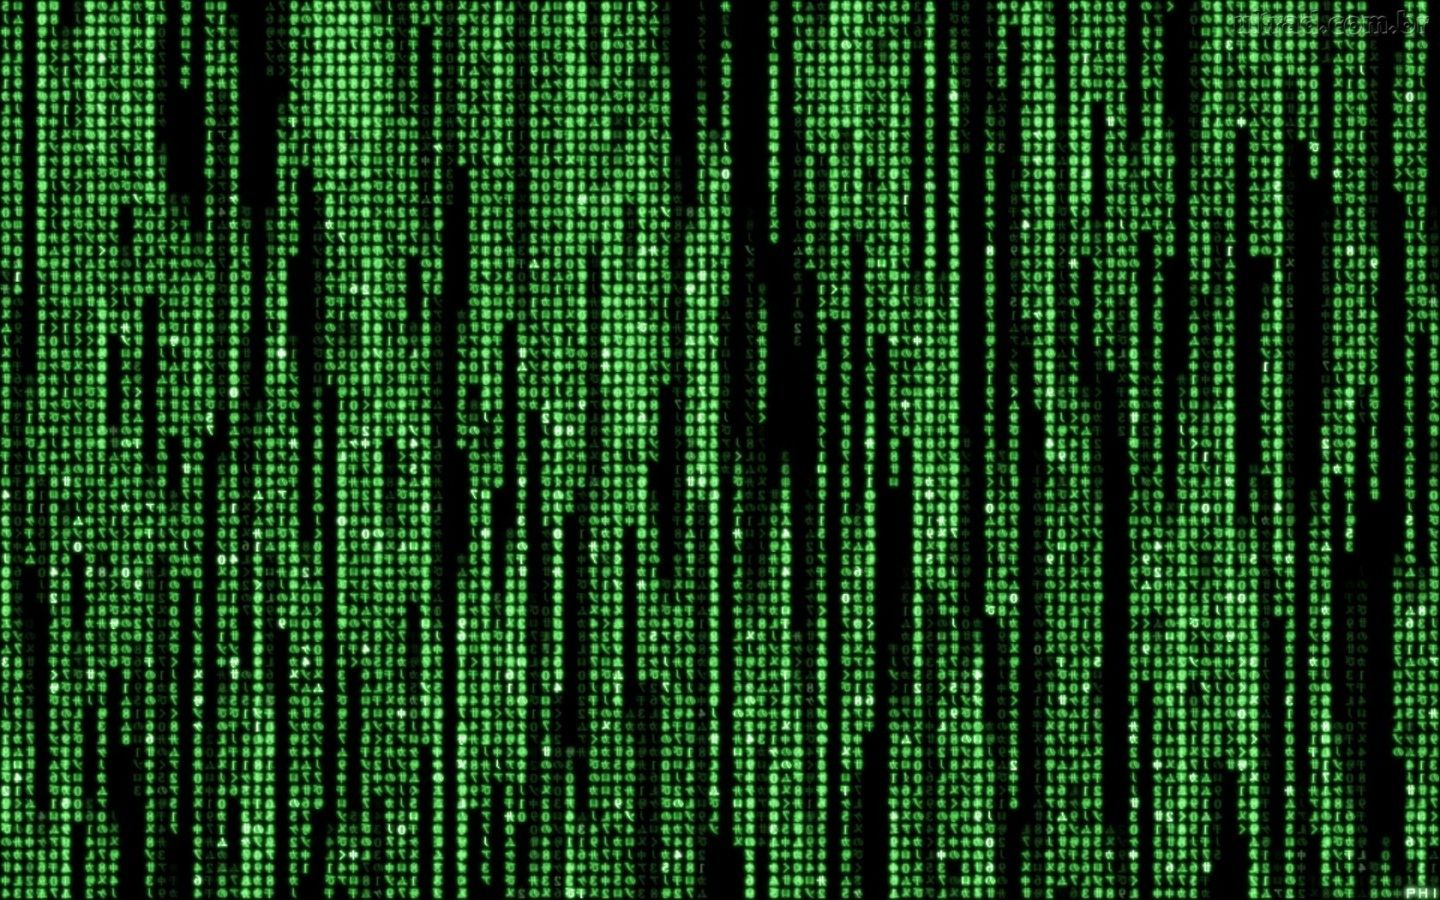 Matrix Live Wallpaper - Android Apps on Google Play | Best Games Wallpapers